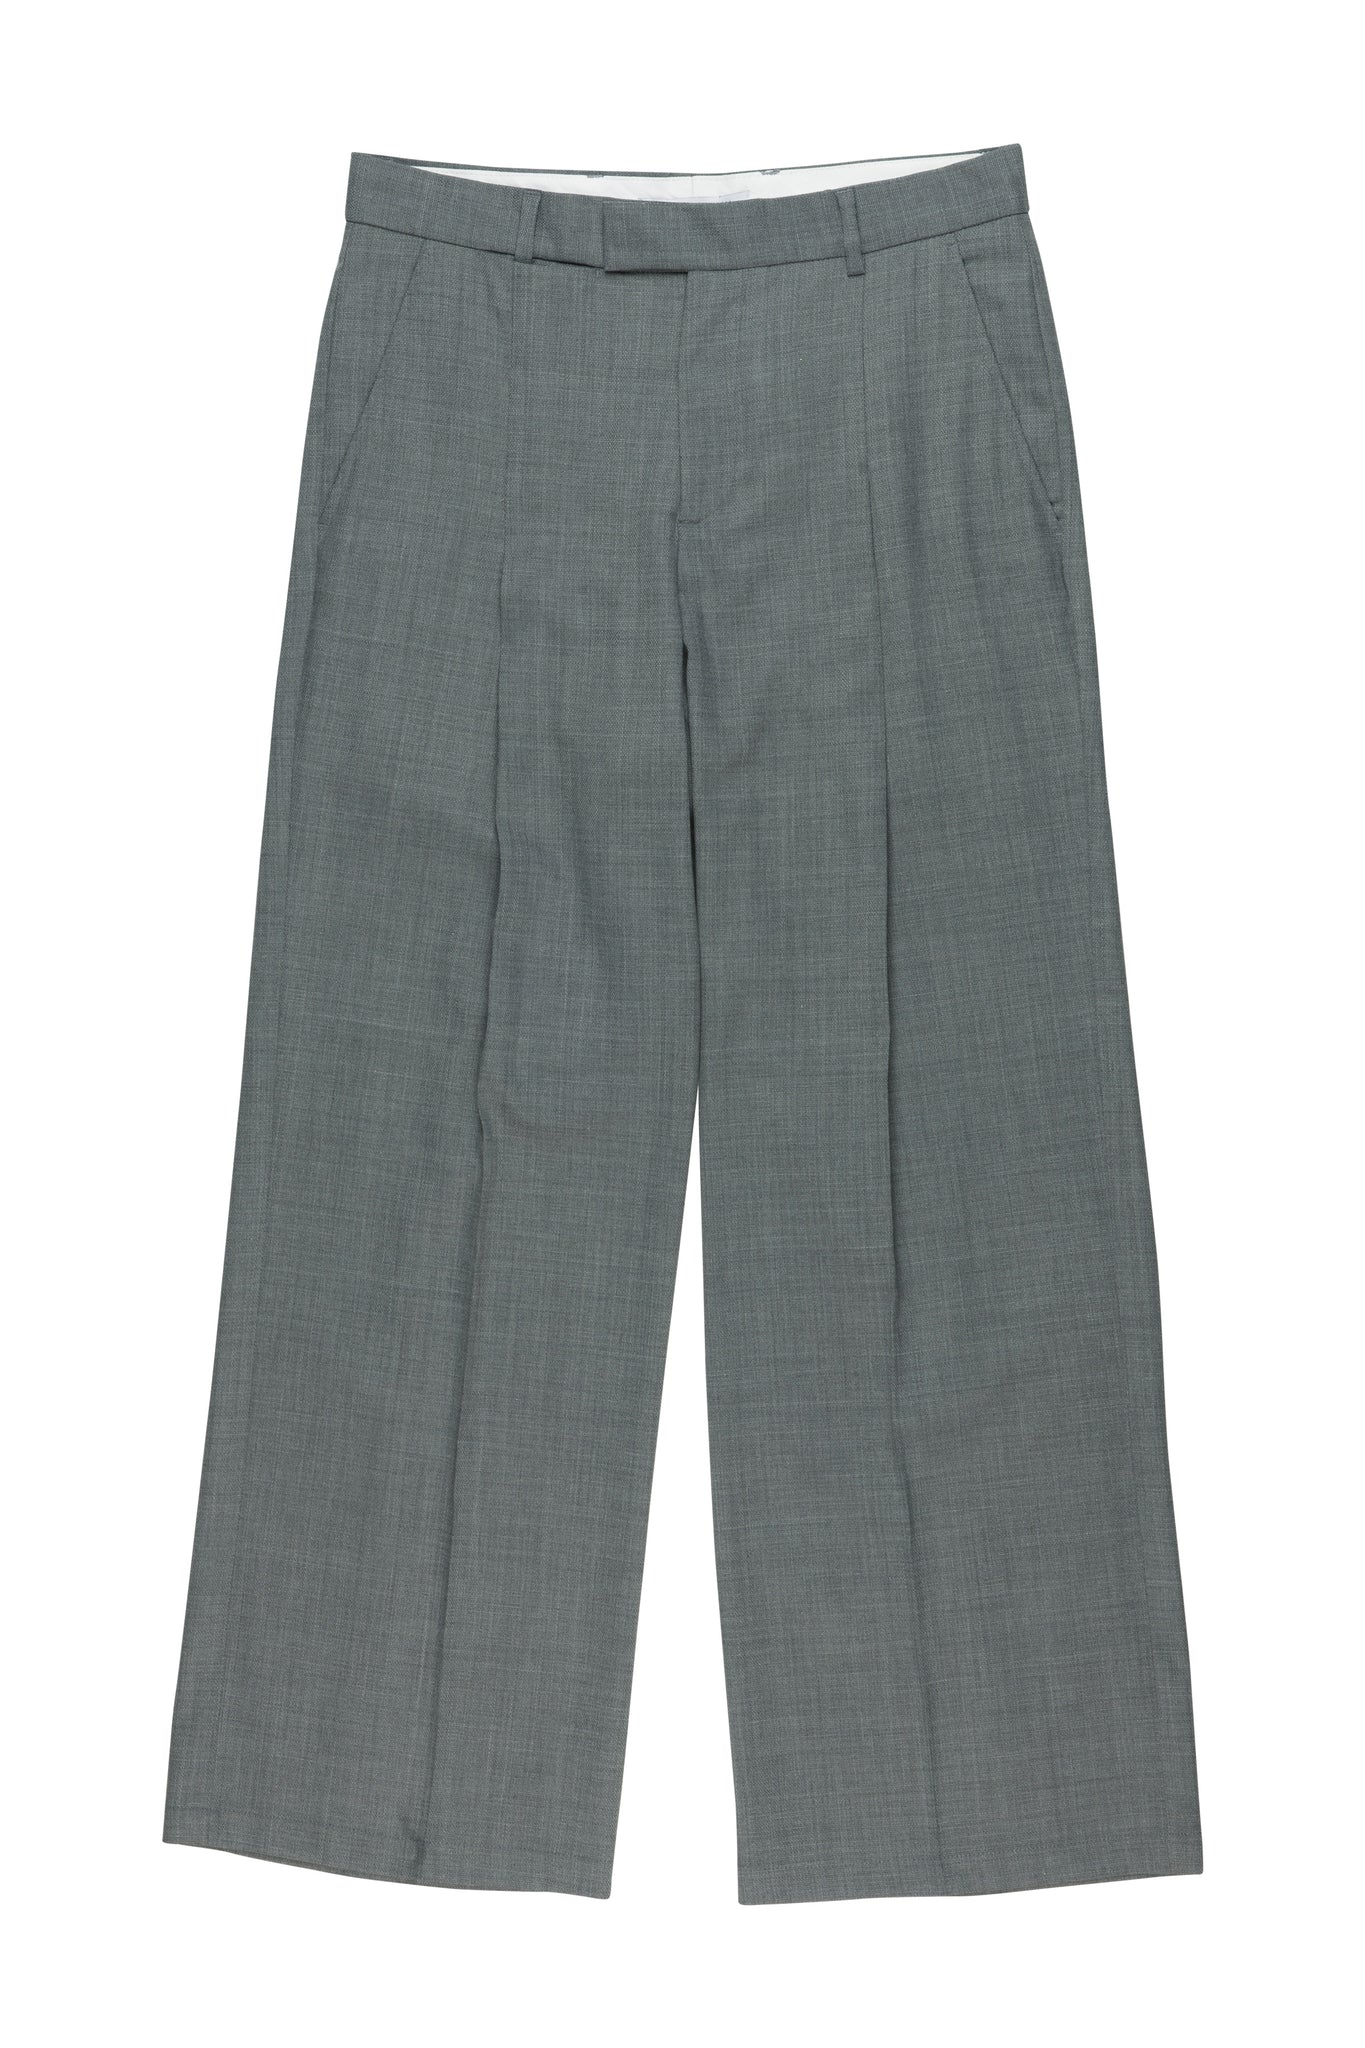 Trupo Trousers Light Grey from danish menswear designer Martin Asbjørn